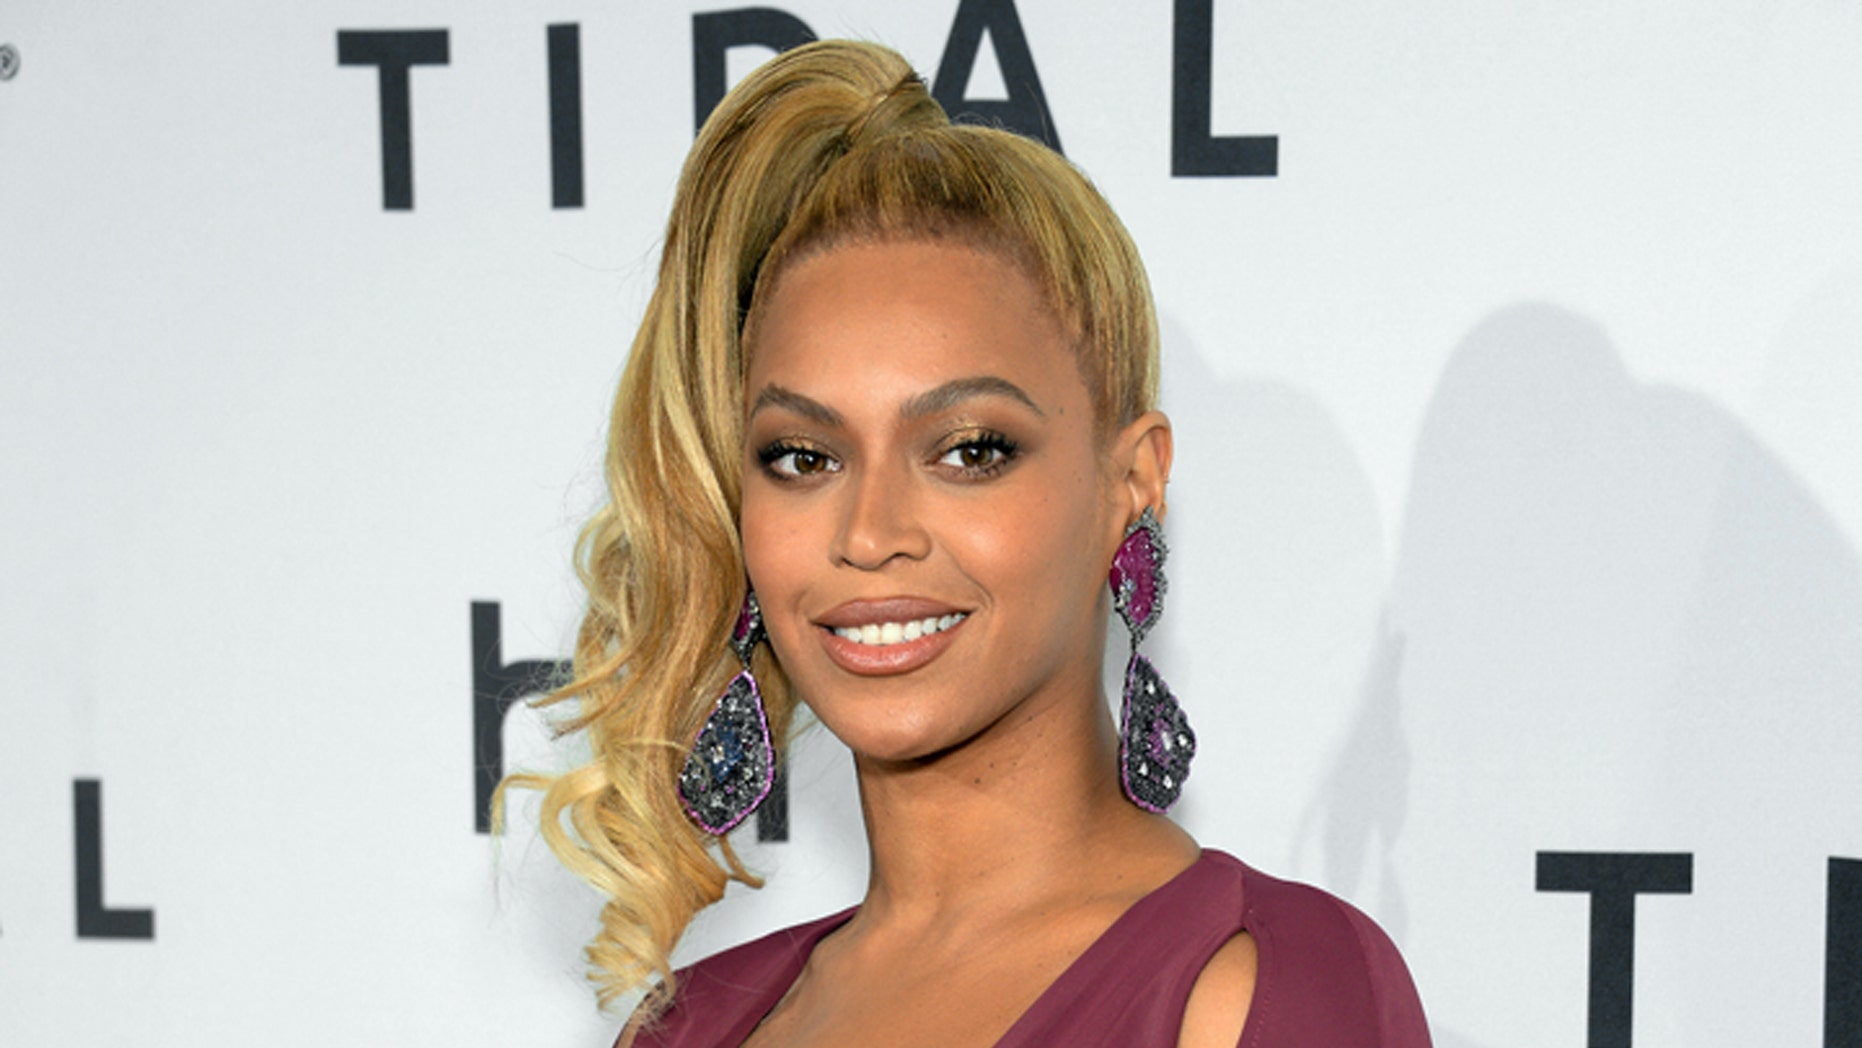 Oct. 20, 2015. Beyonce arrives at TIDAL X: 1020 Amplified by HTC at the Barclays Center in New York.